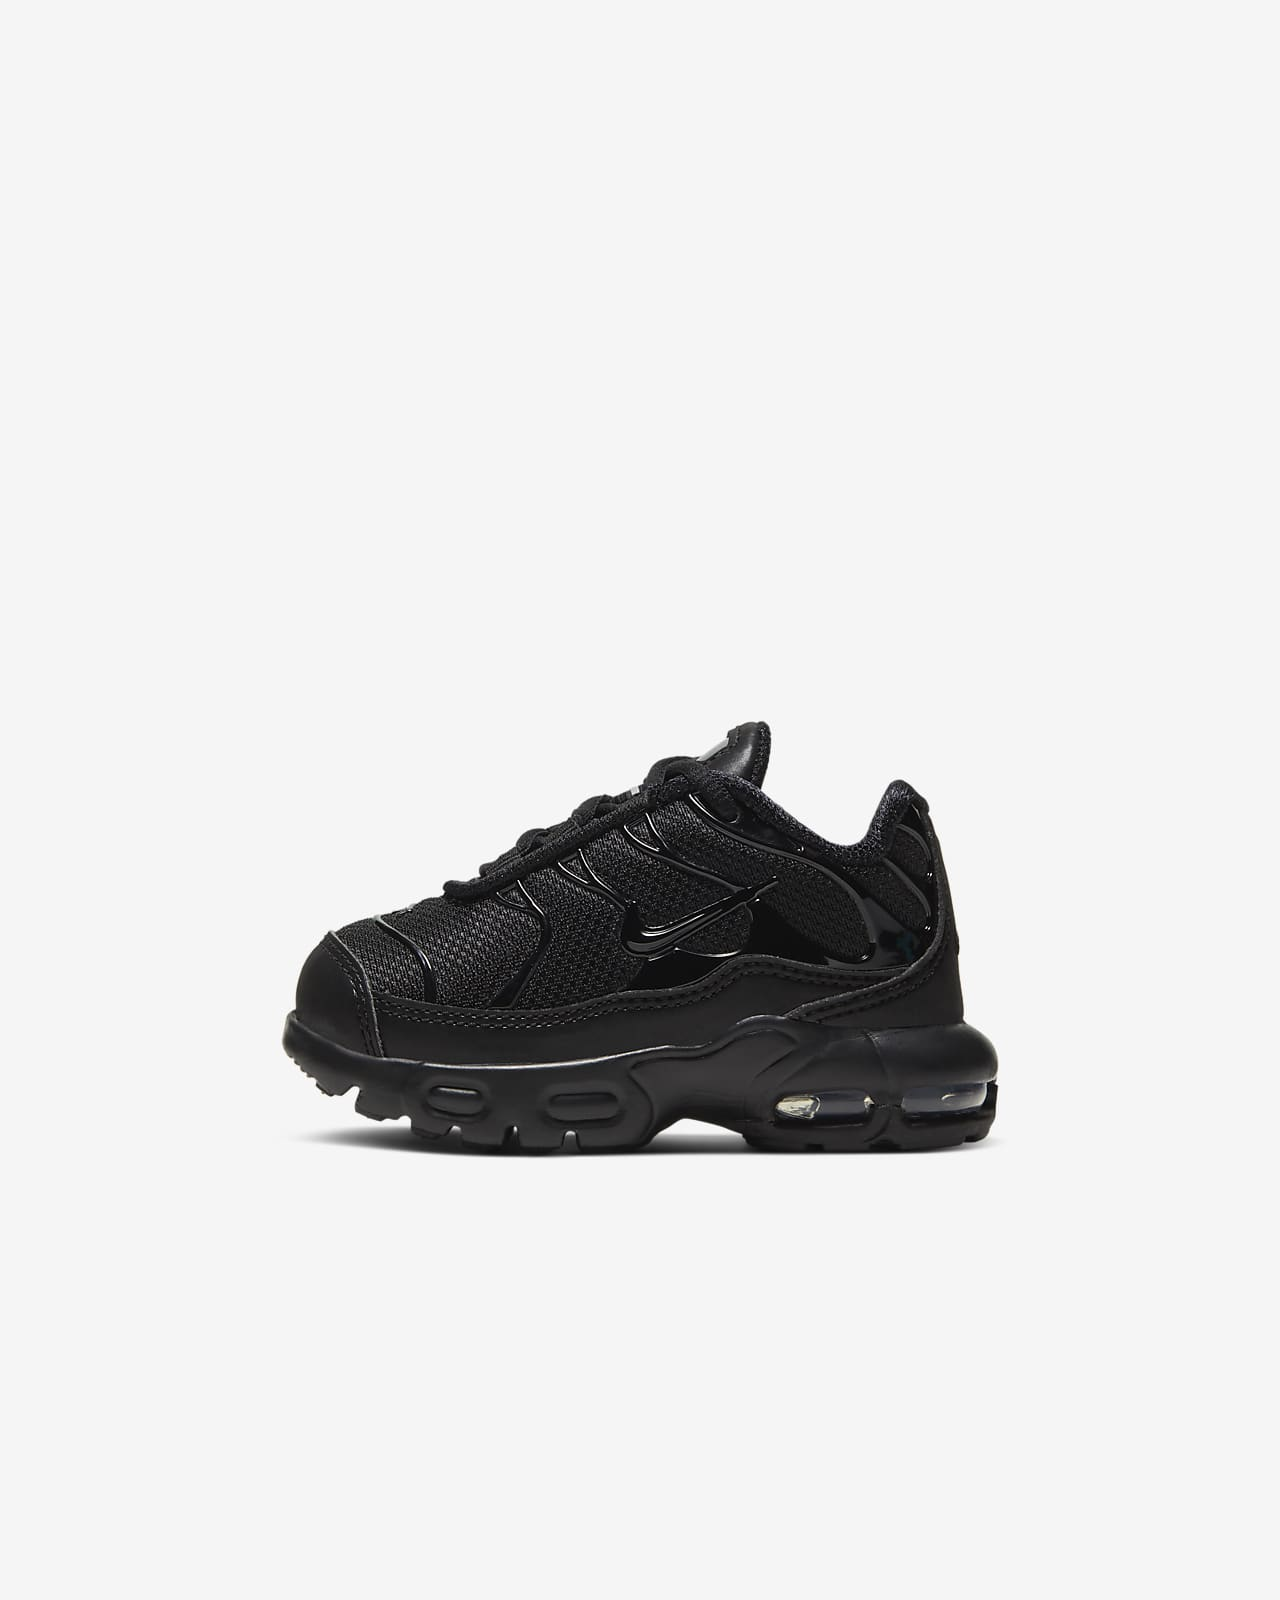 Nike Air Max Plus Baby and Toddler Shoe